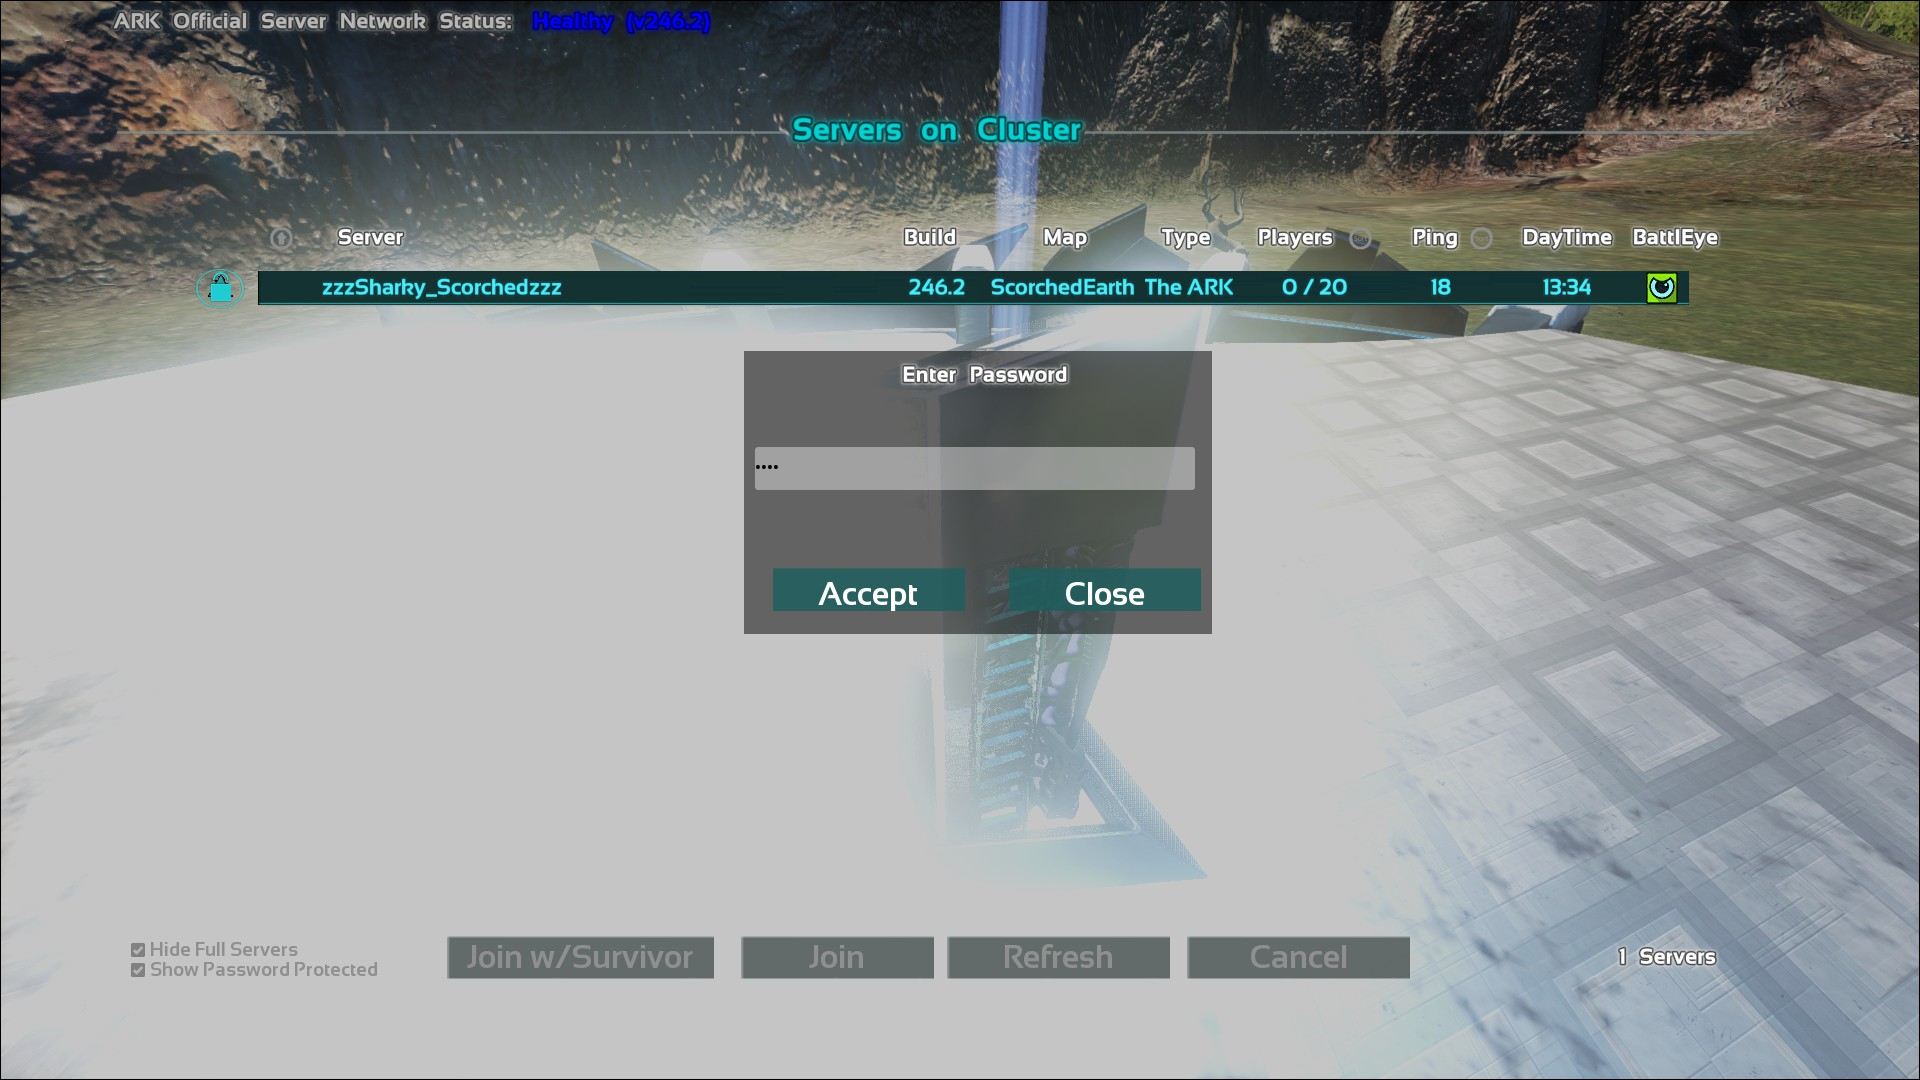 Guide] Cluster Setup - Server Administration - ARK